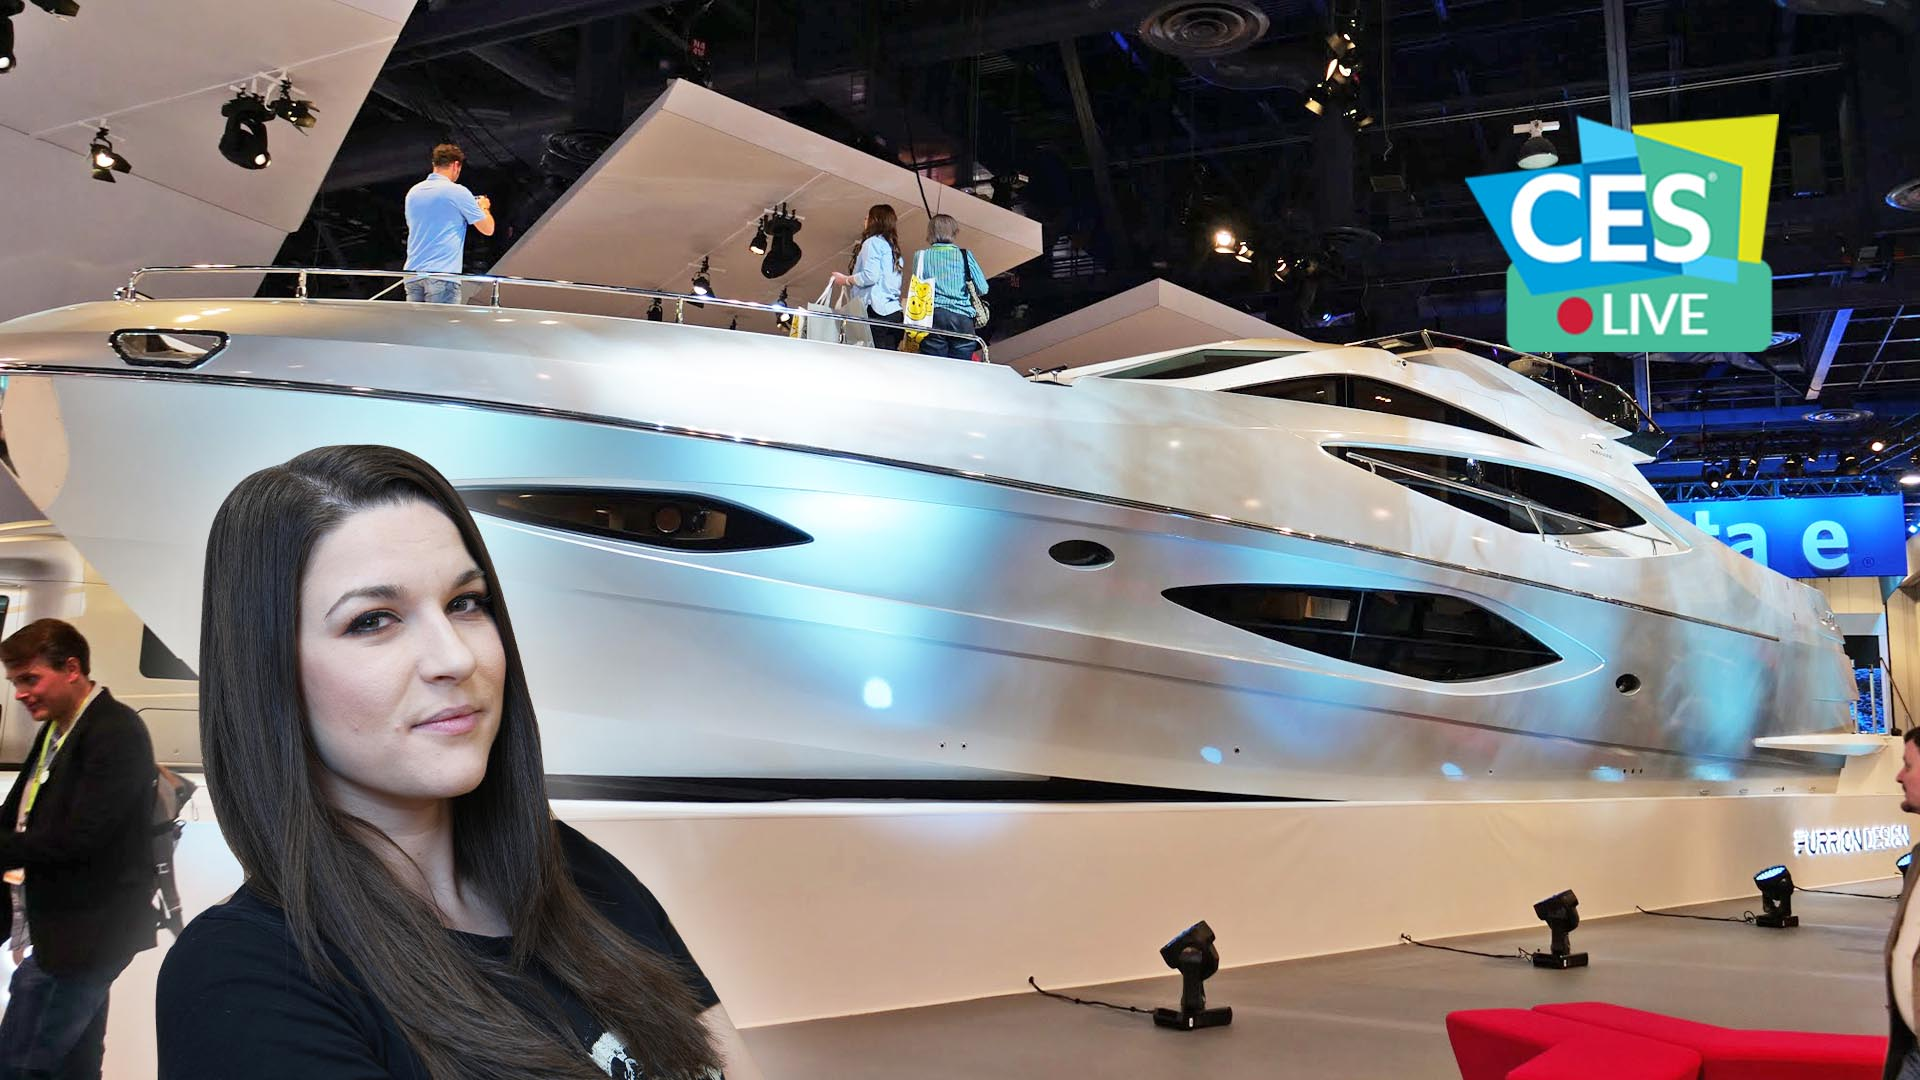 Adonis: lo smart yacht e extralusso con intelligenza artificiale di Furrion | CES 2019 thumbnail